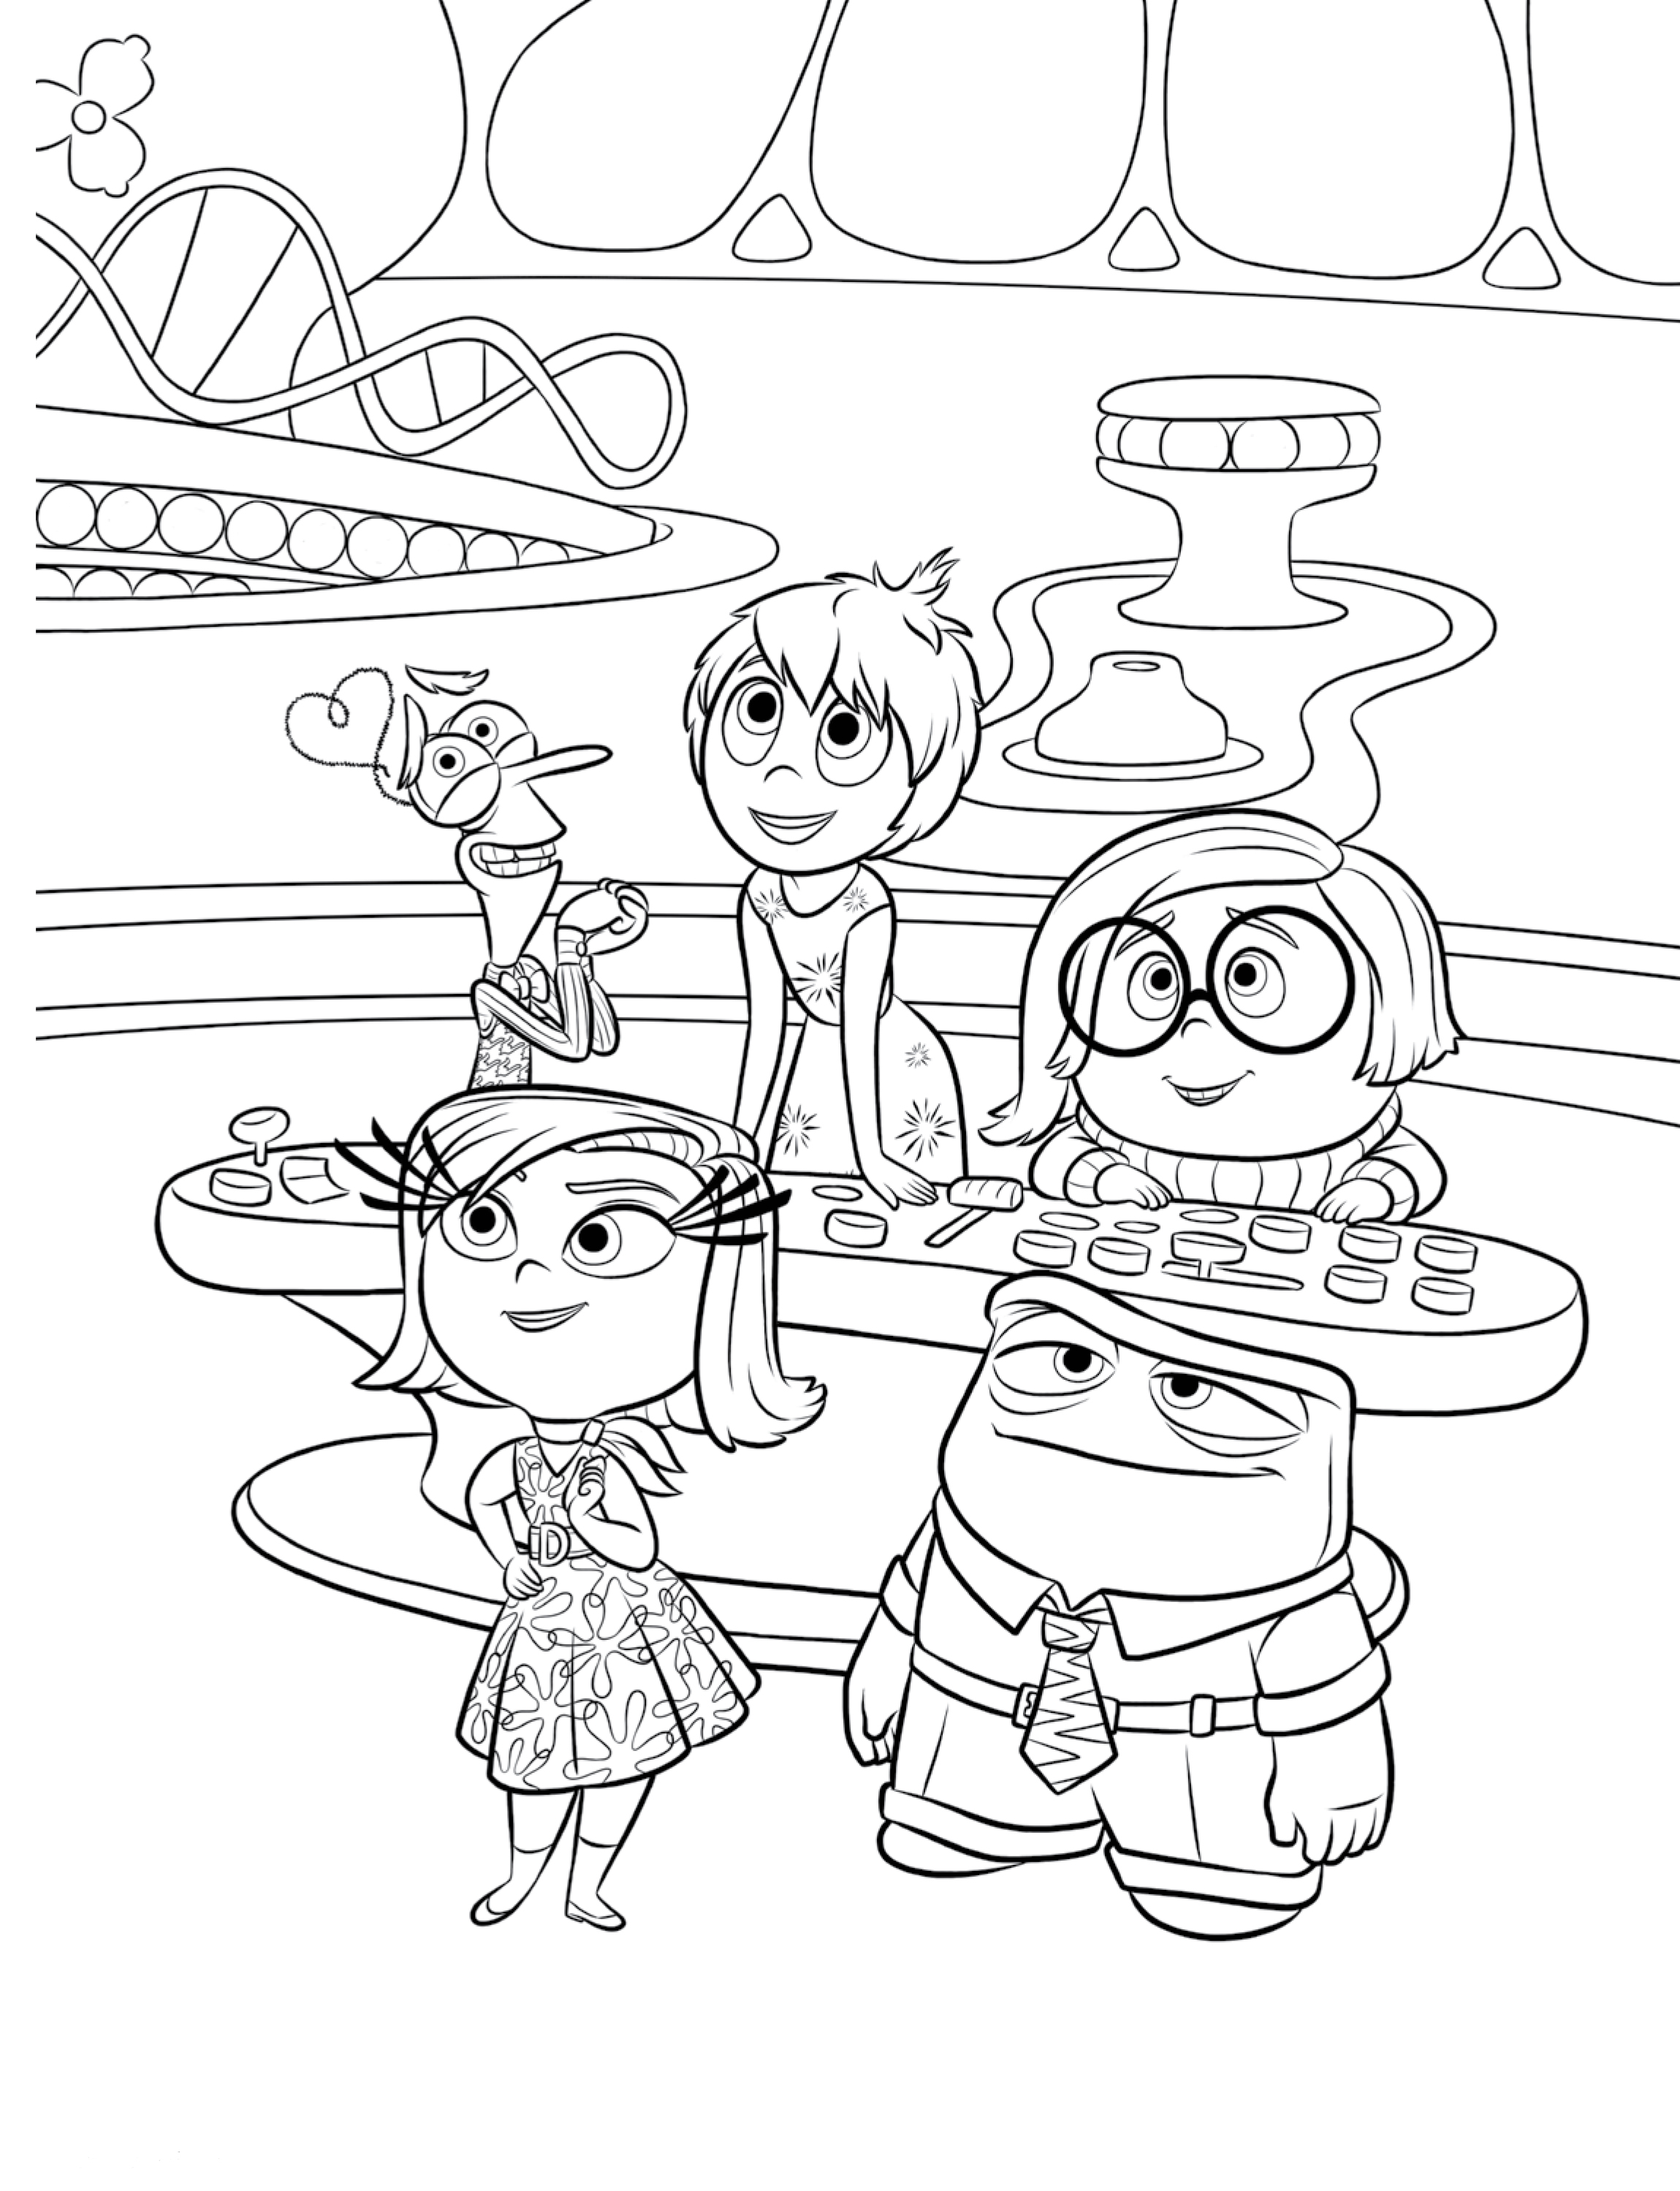 best coloring pages for kids - inside out coloring pages best coloring pages for kids